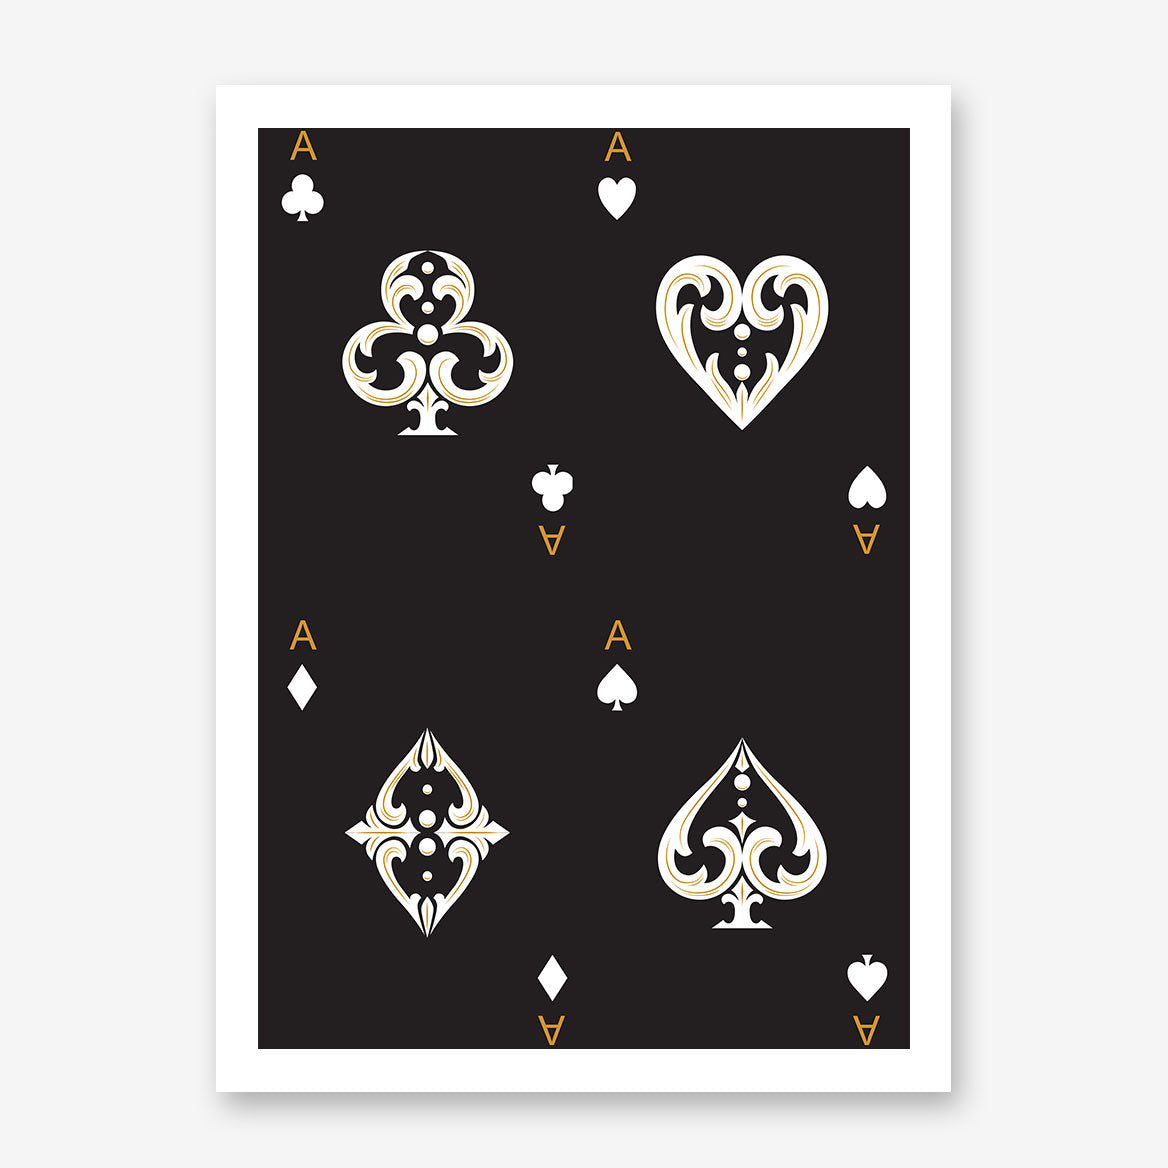 Poster print with all ace cards, on black background.